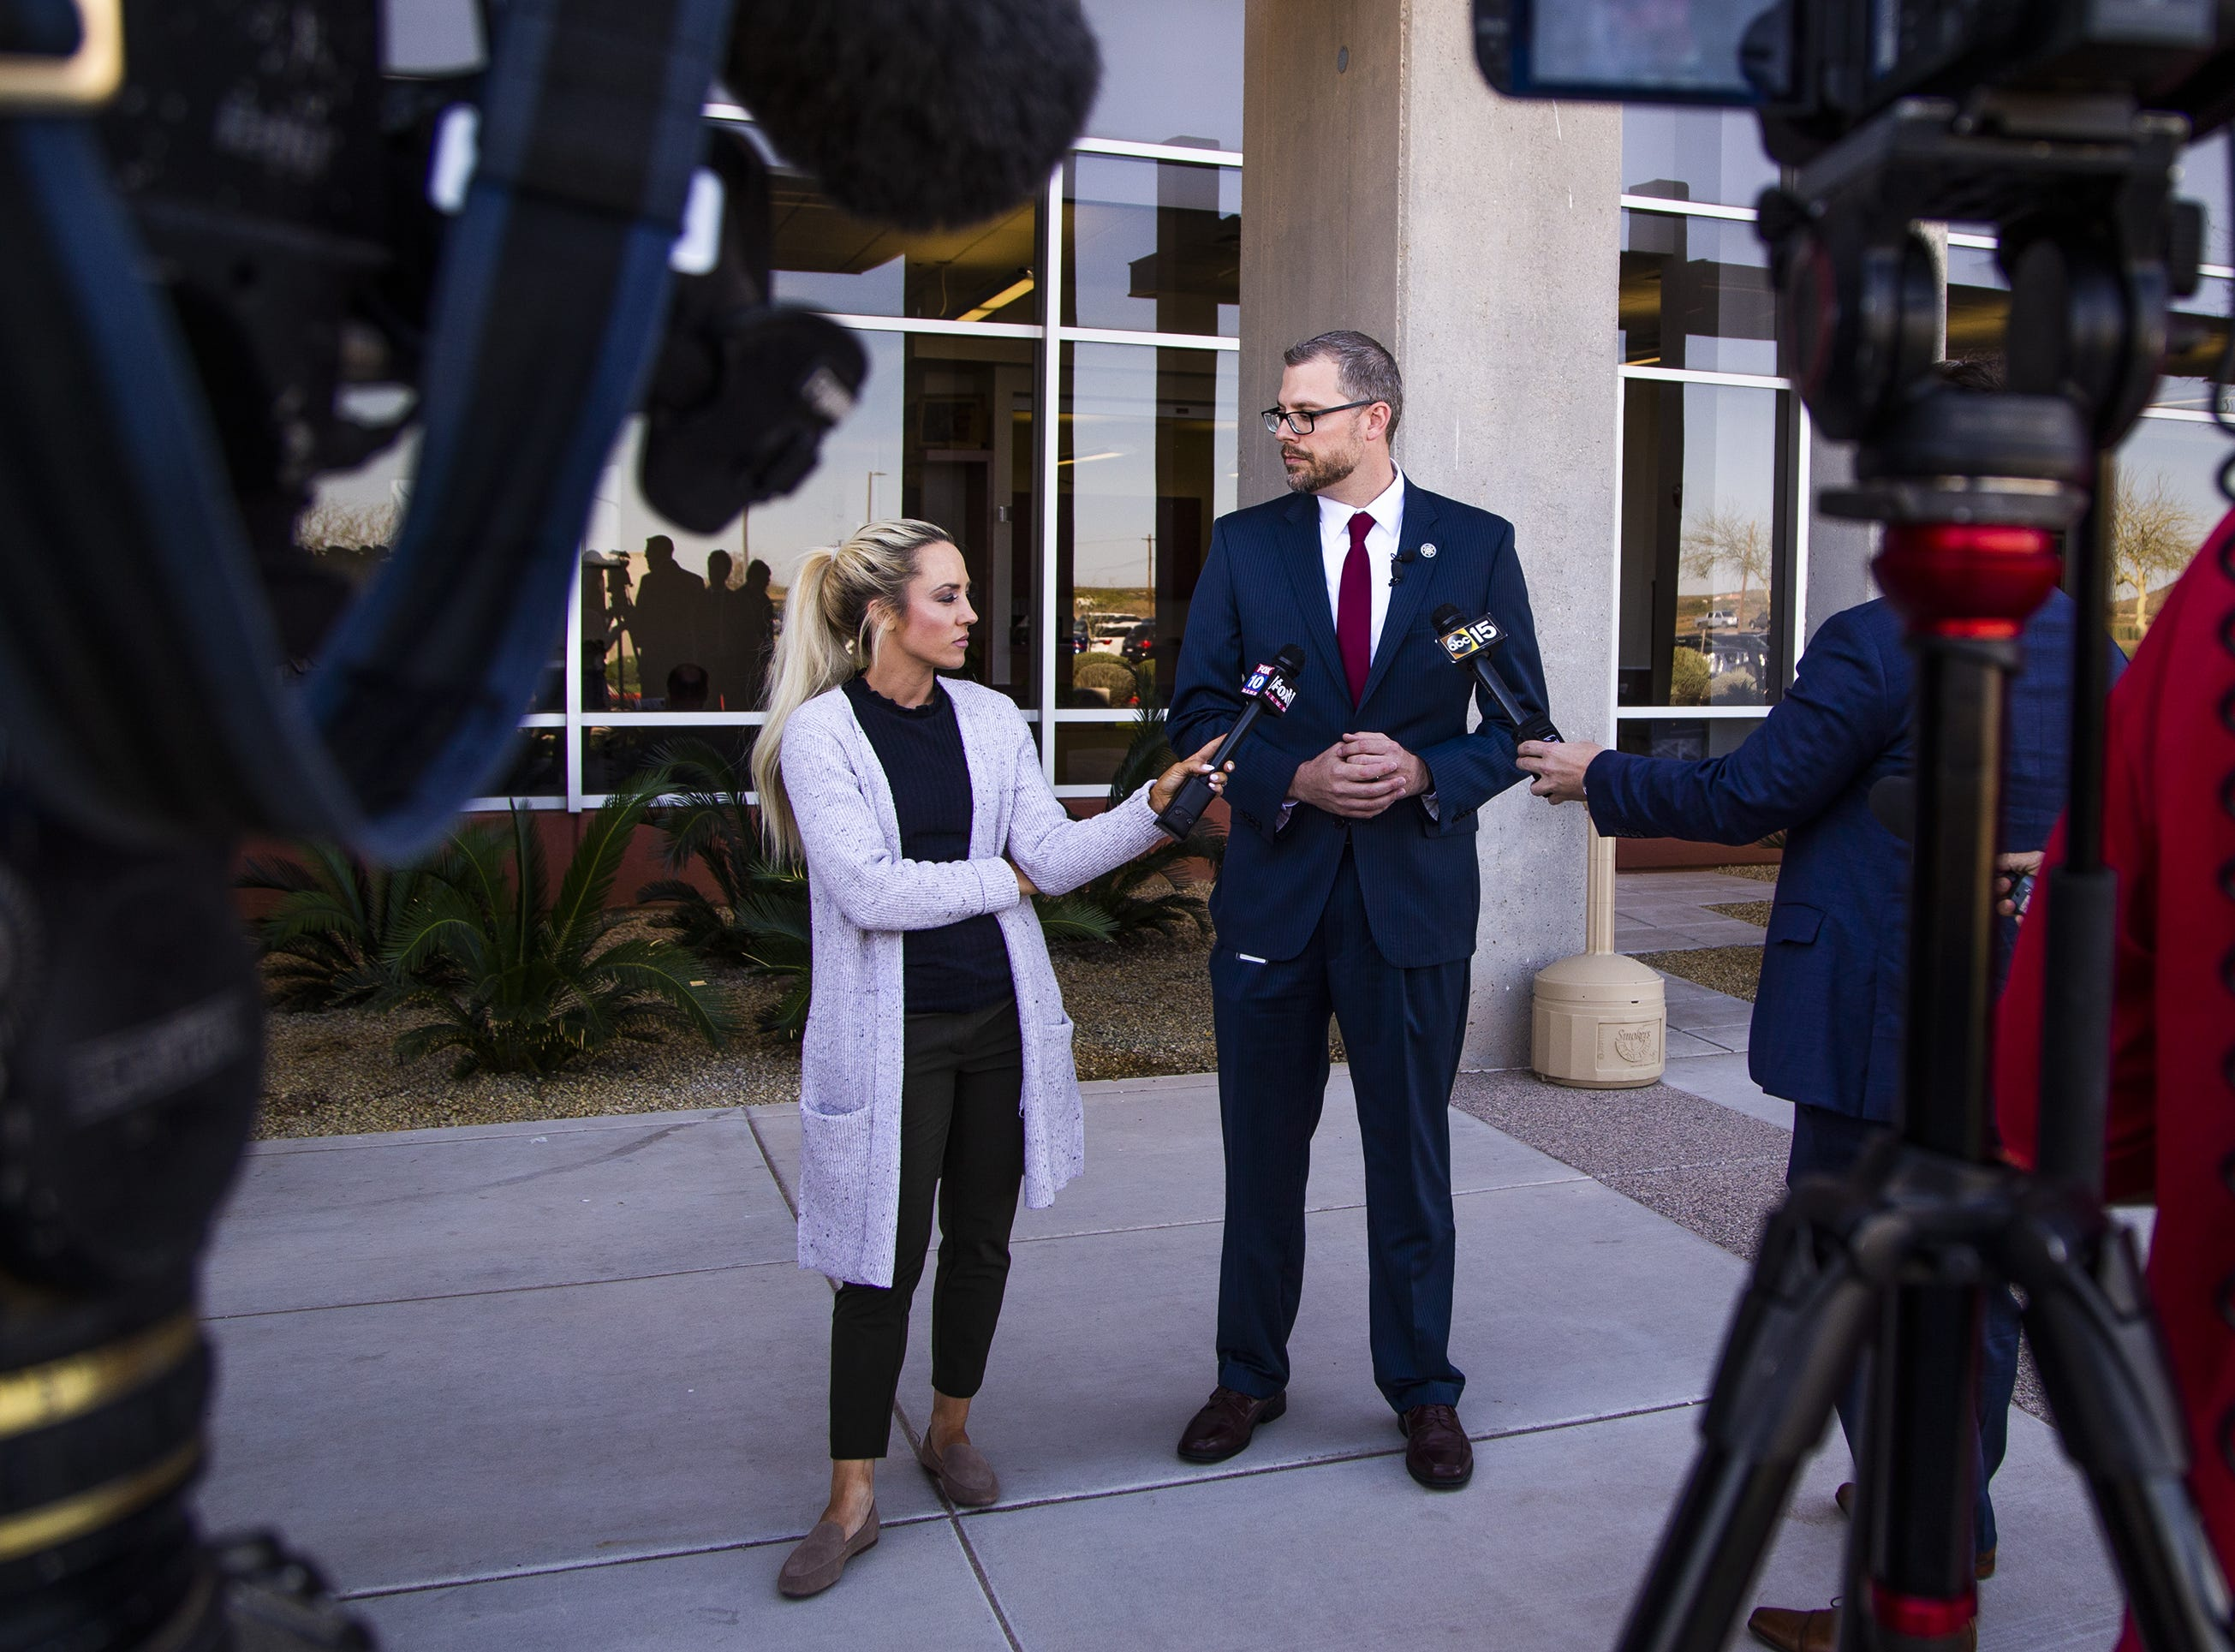 Pinal County Attorney Kent Volkmer speaks to the media outside Pinal County Superior Court in Florence on March 29, 2019.